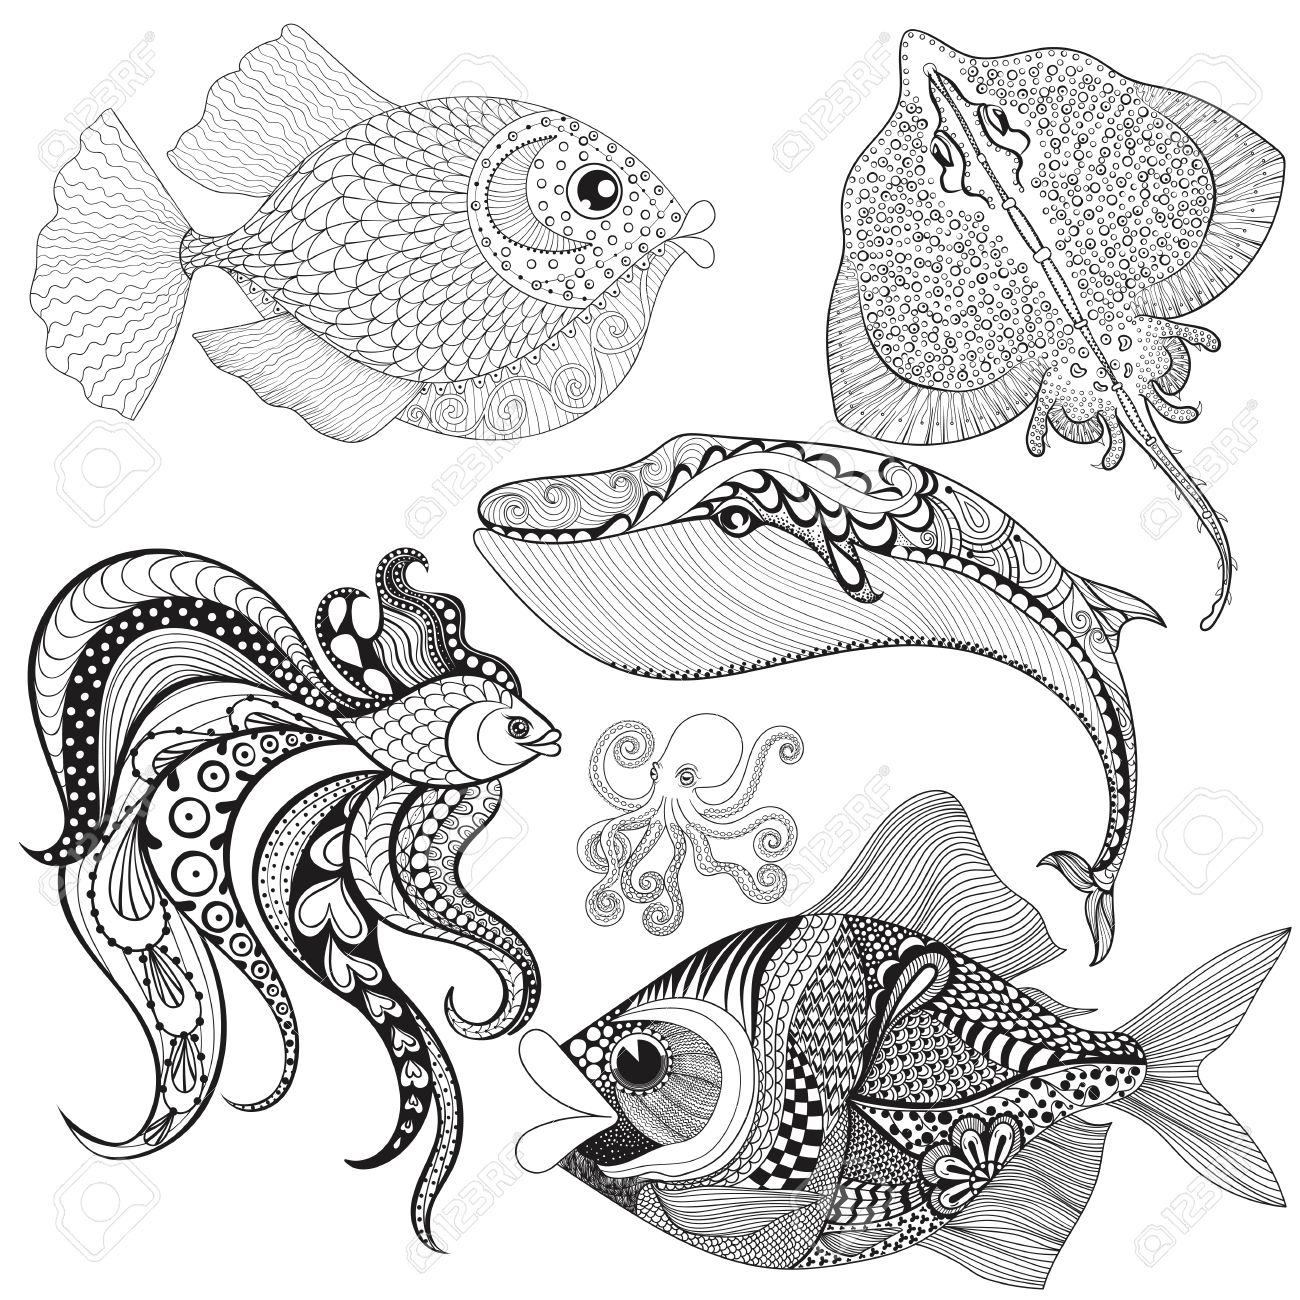 Common Stingray coloring page | Free Printable Coloring Pages | 1300x1300